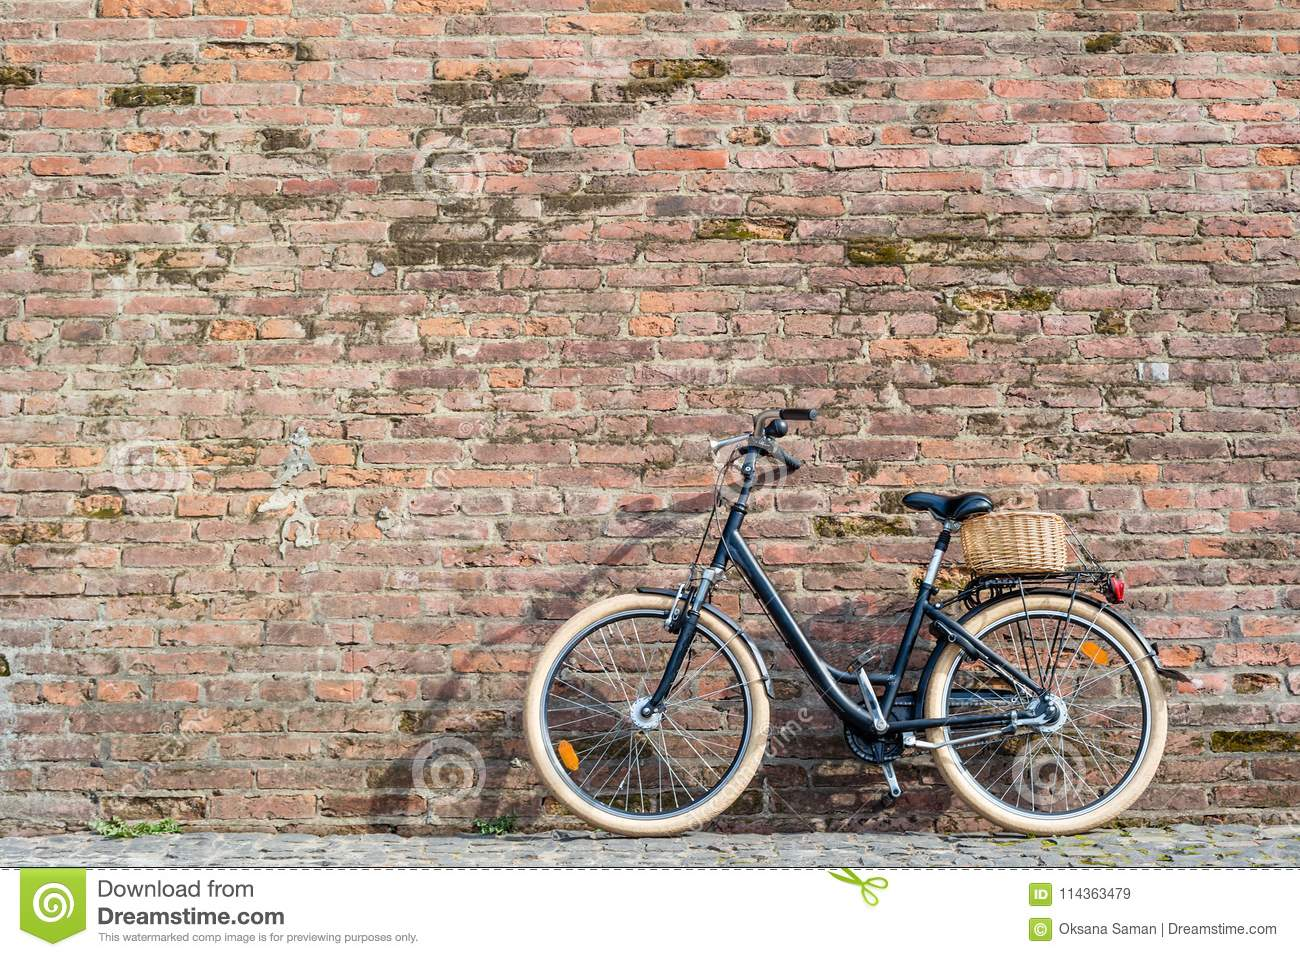 0497085b9b1 Black Retro Vintage Bicycle With Old Brick Wall. Stock Image - Image ...